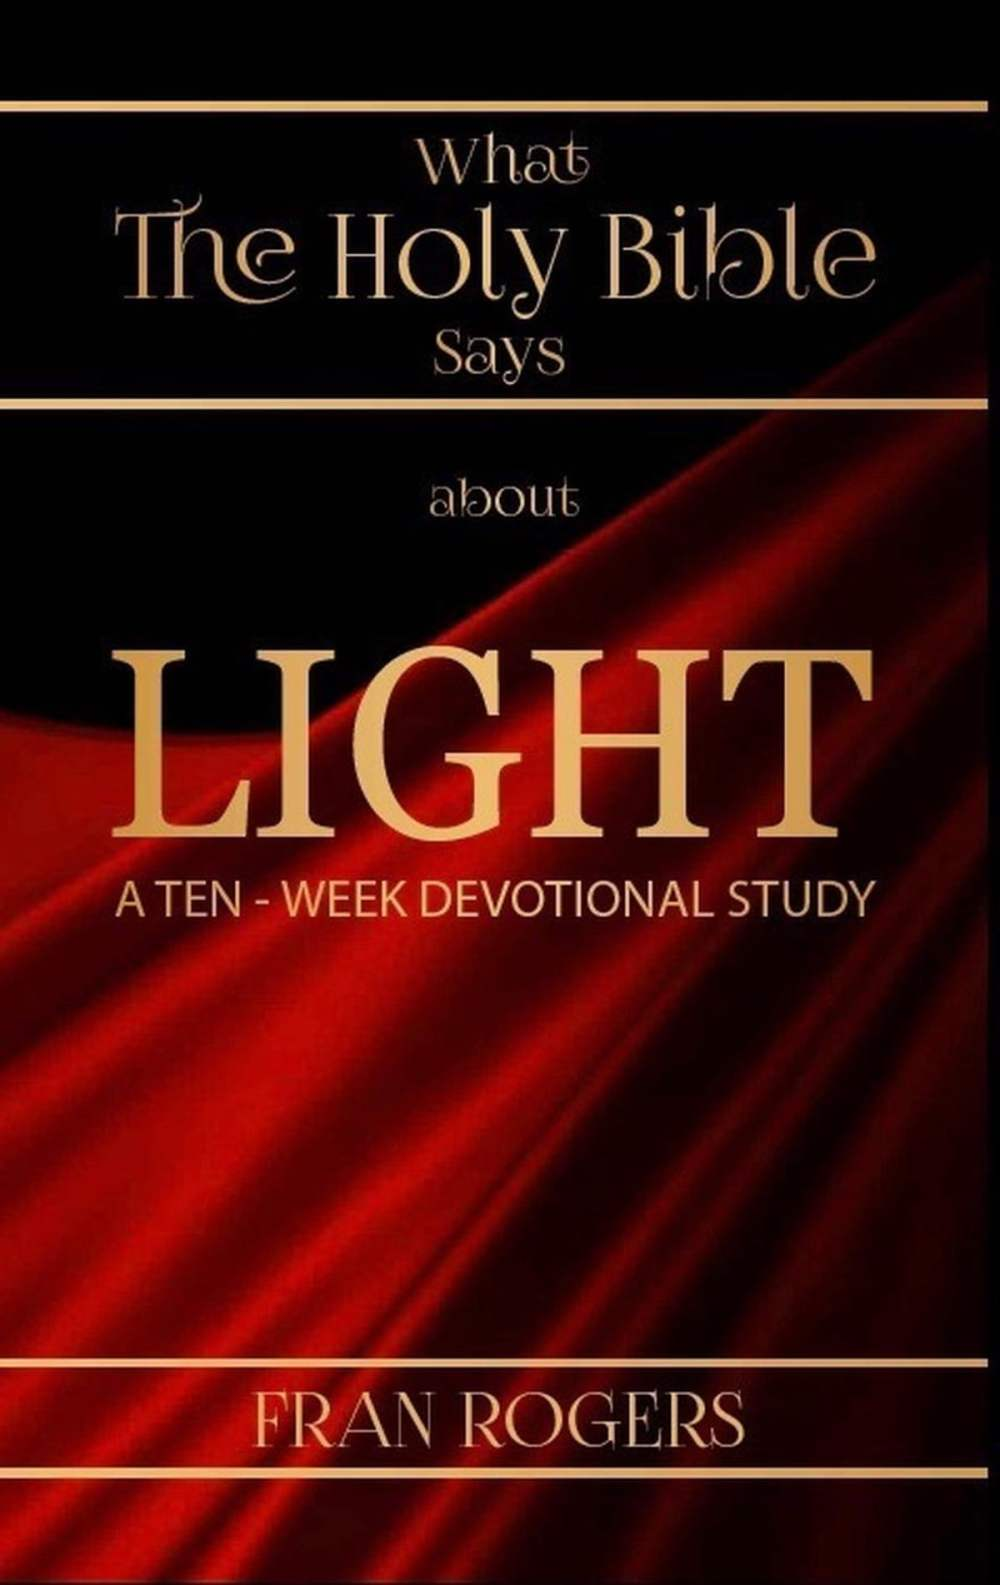 medium resolution of what the holy bible says about light ebook by fran rogers 9781536539837 rakuten kobo